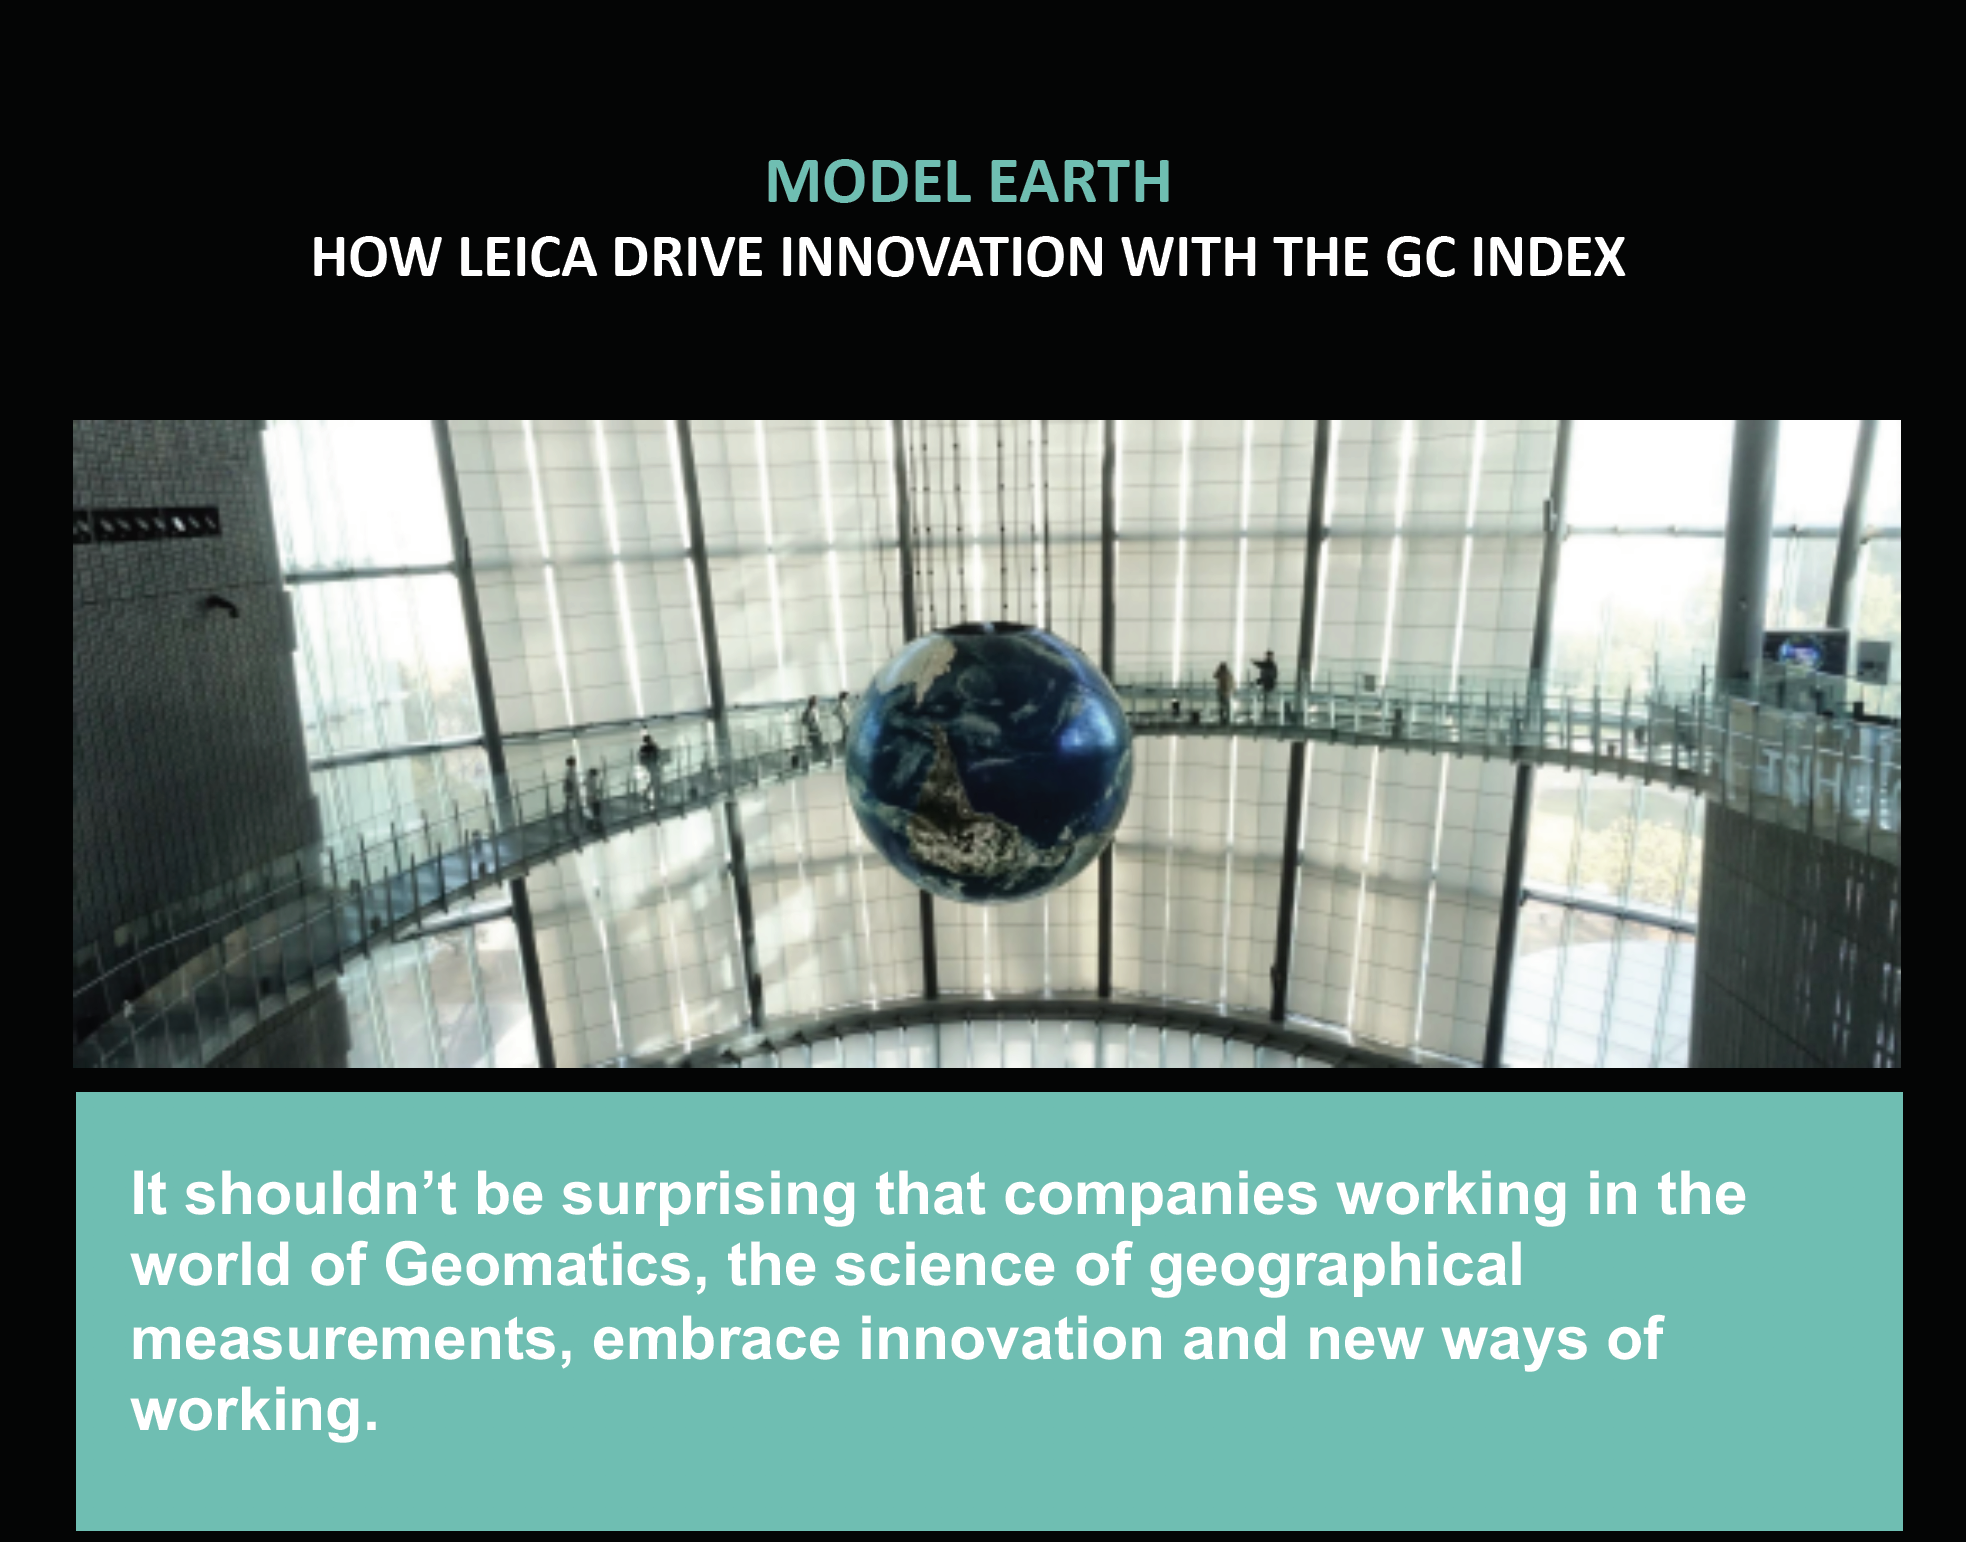 LEICA GEOSYSTEMS USE THE GC INDEX<sup>®</sup> TO DRIVE GROWTH & INNOVATION